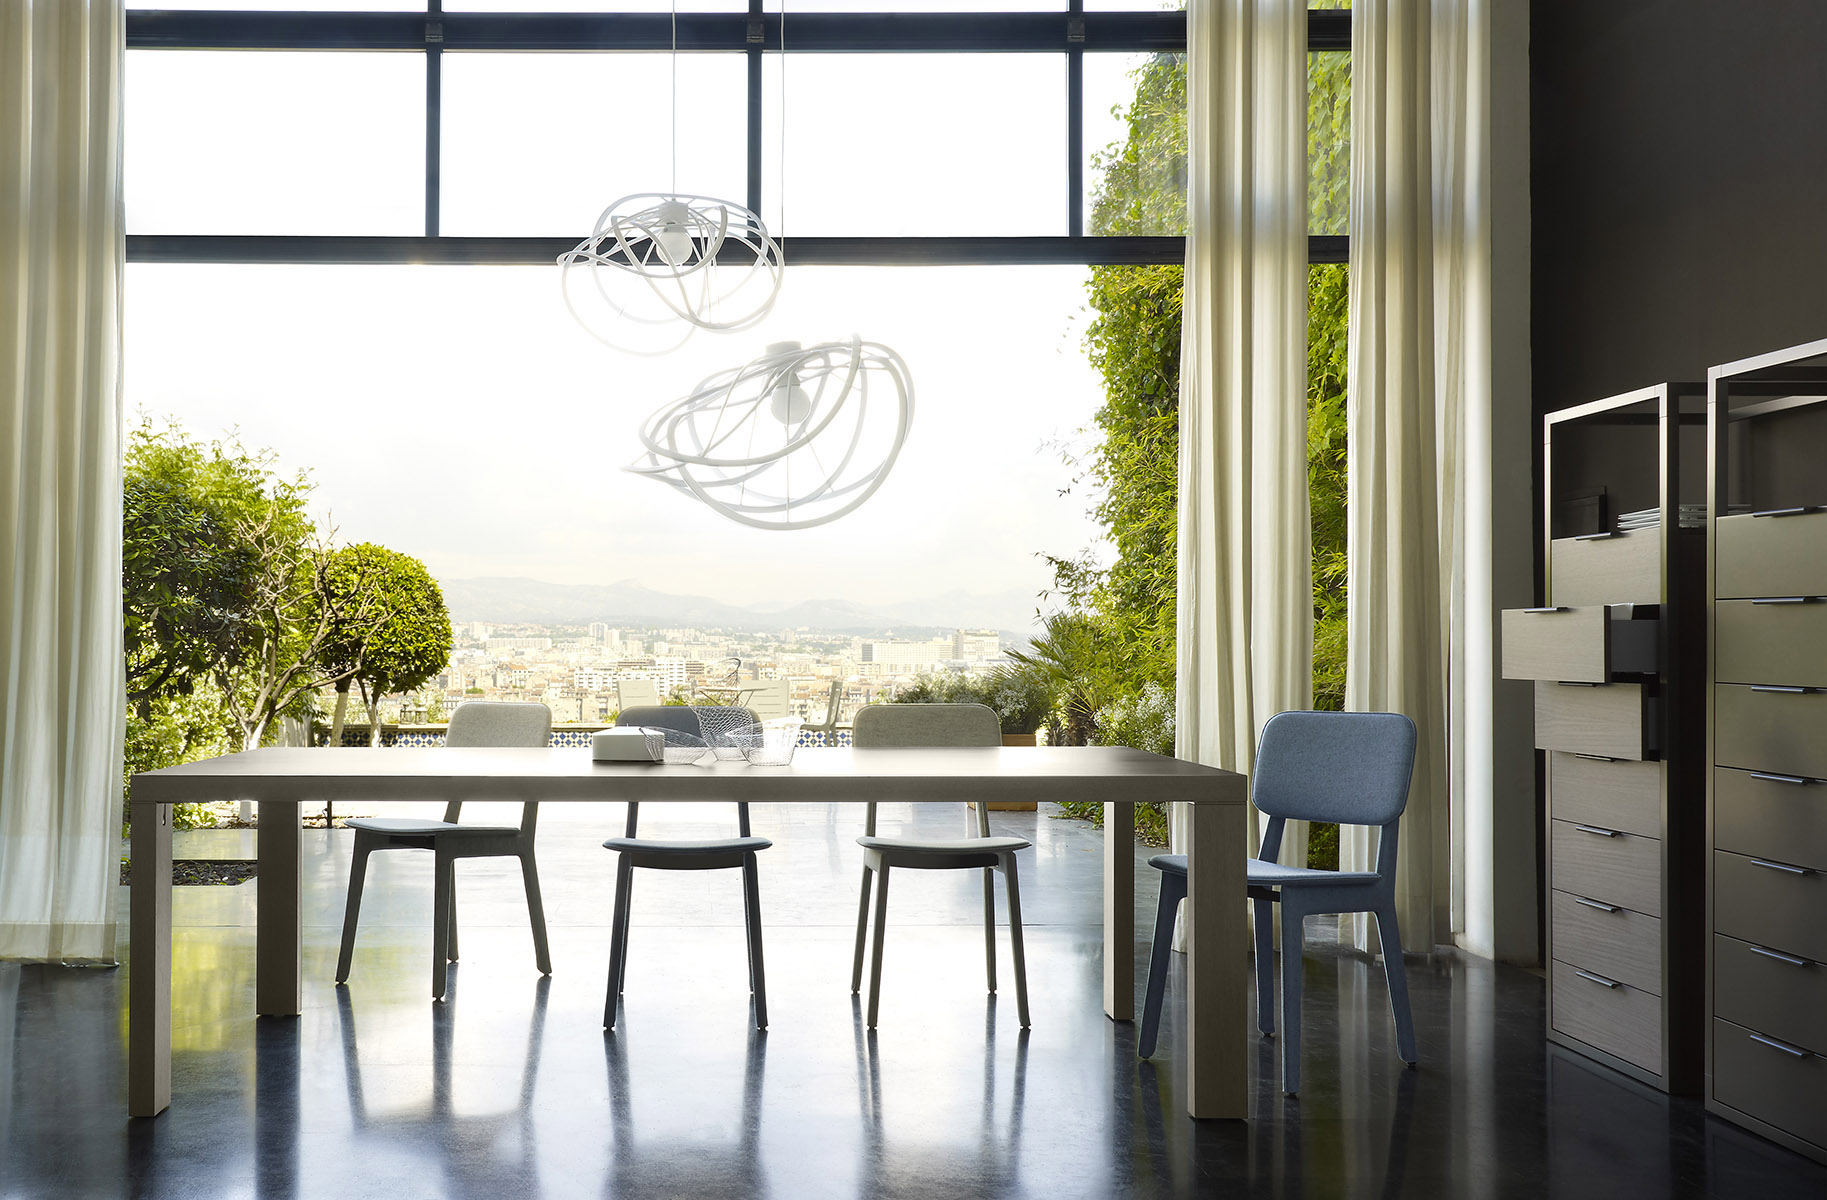 lemoine_int8